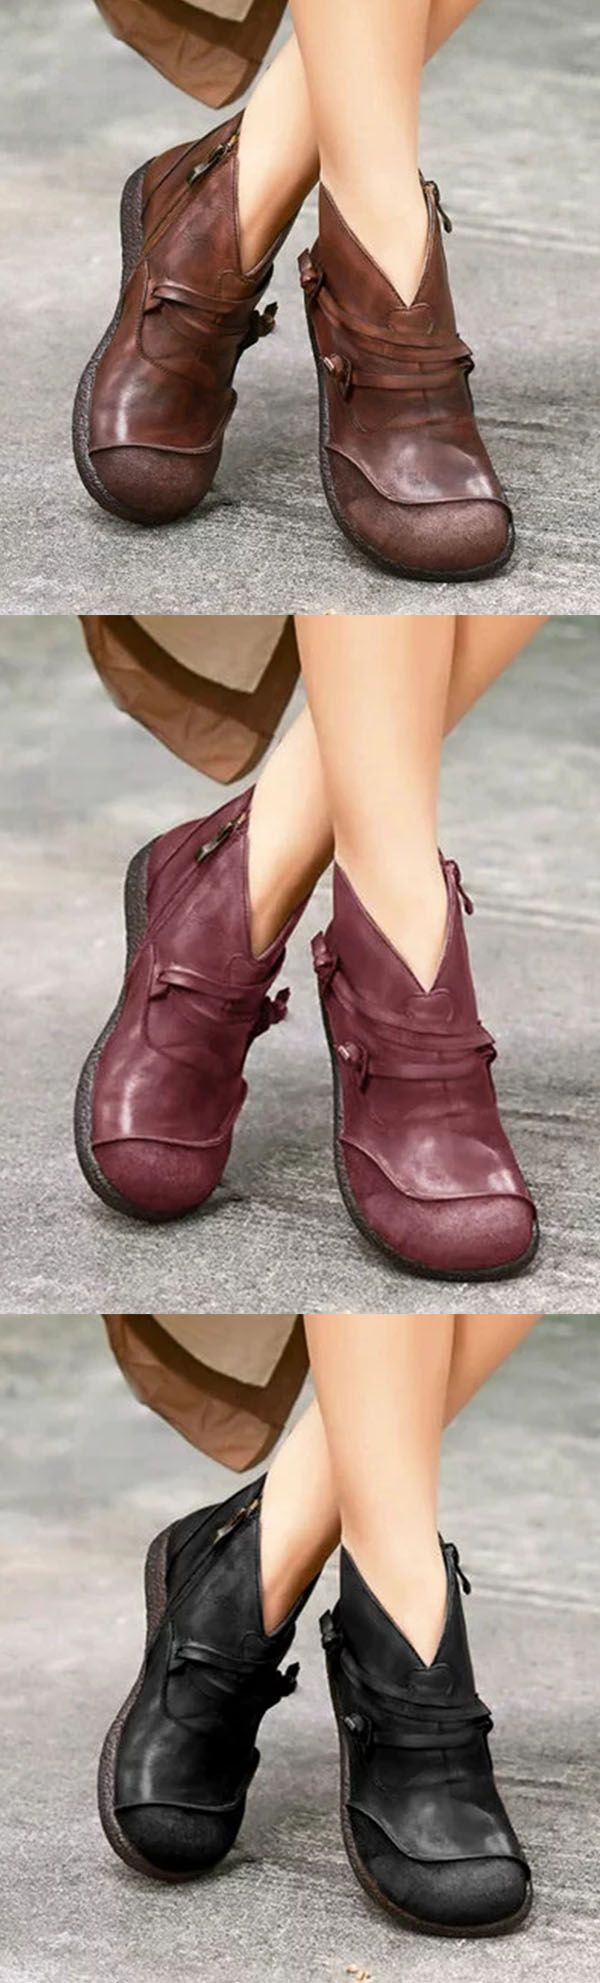 64% Off>>Flat Heel Spring Casual Pu Leather Boots